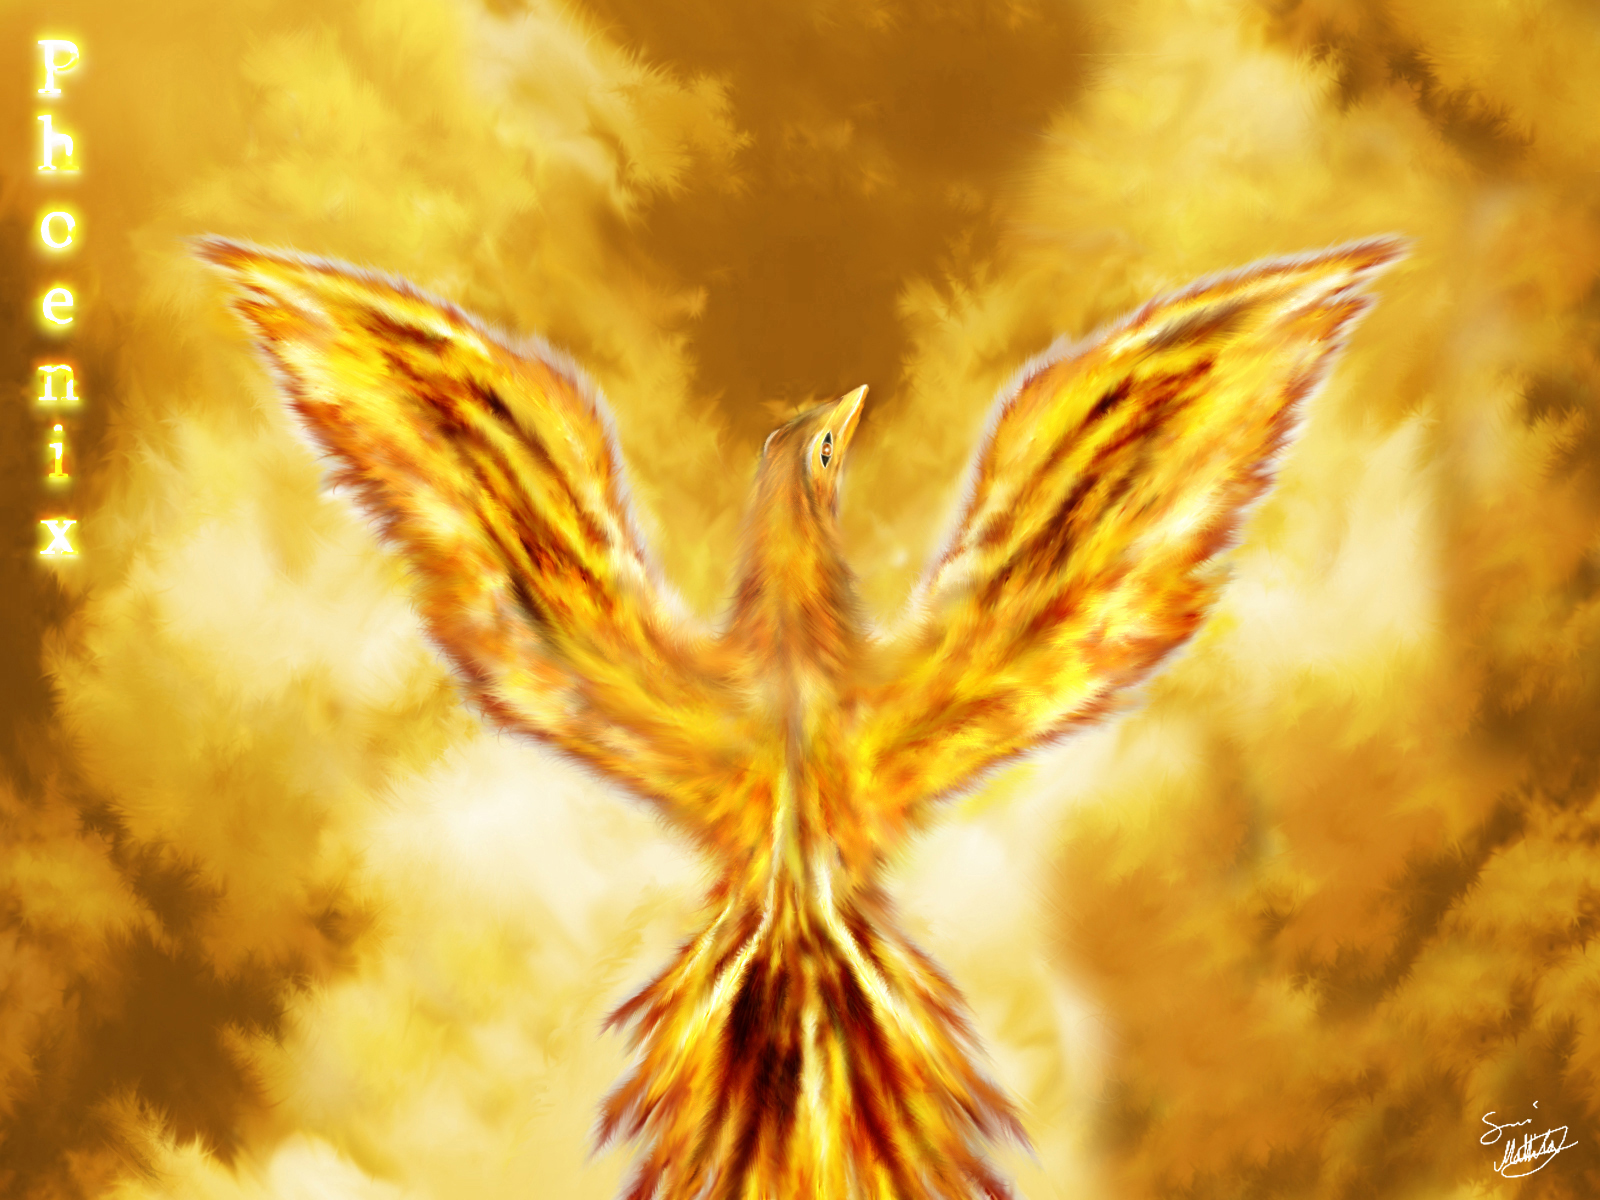 Phoenix wallpaper and background 1600x1200 id 697053 for Gold bird wallpaper